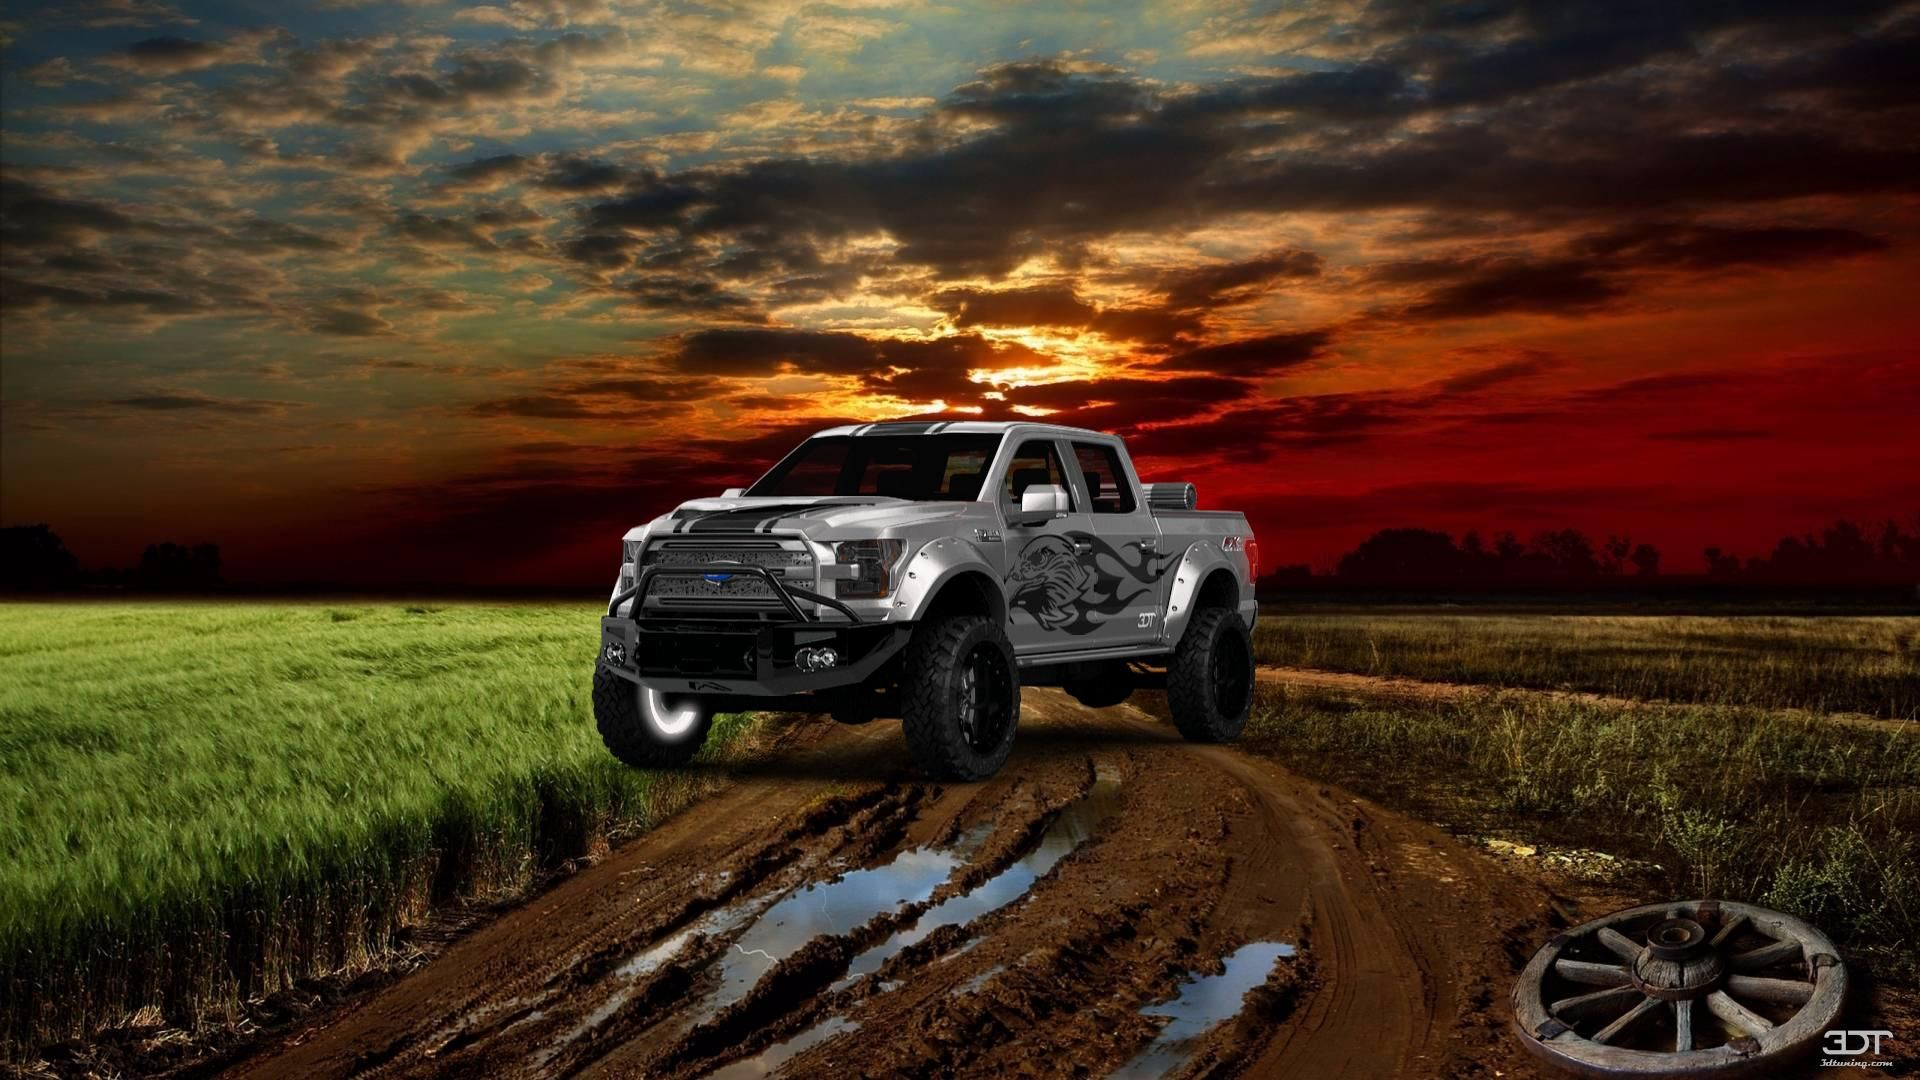 Checkout my tuning ford f 150crewcab 2115 at 3dtuning 3dtuning tuning